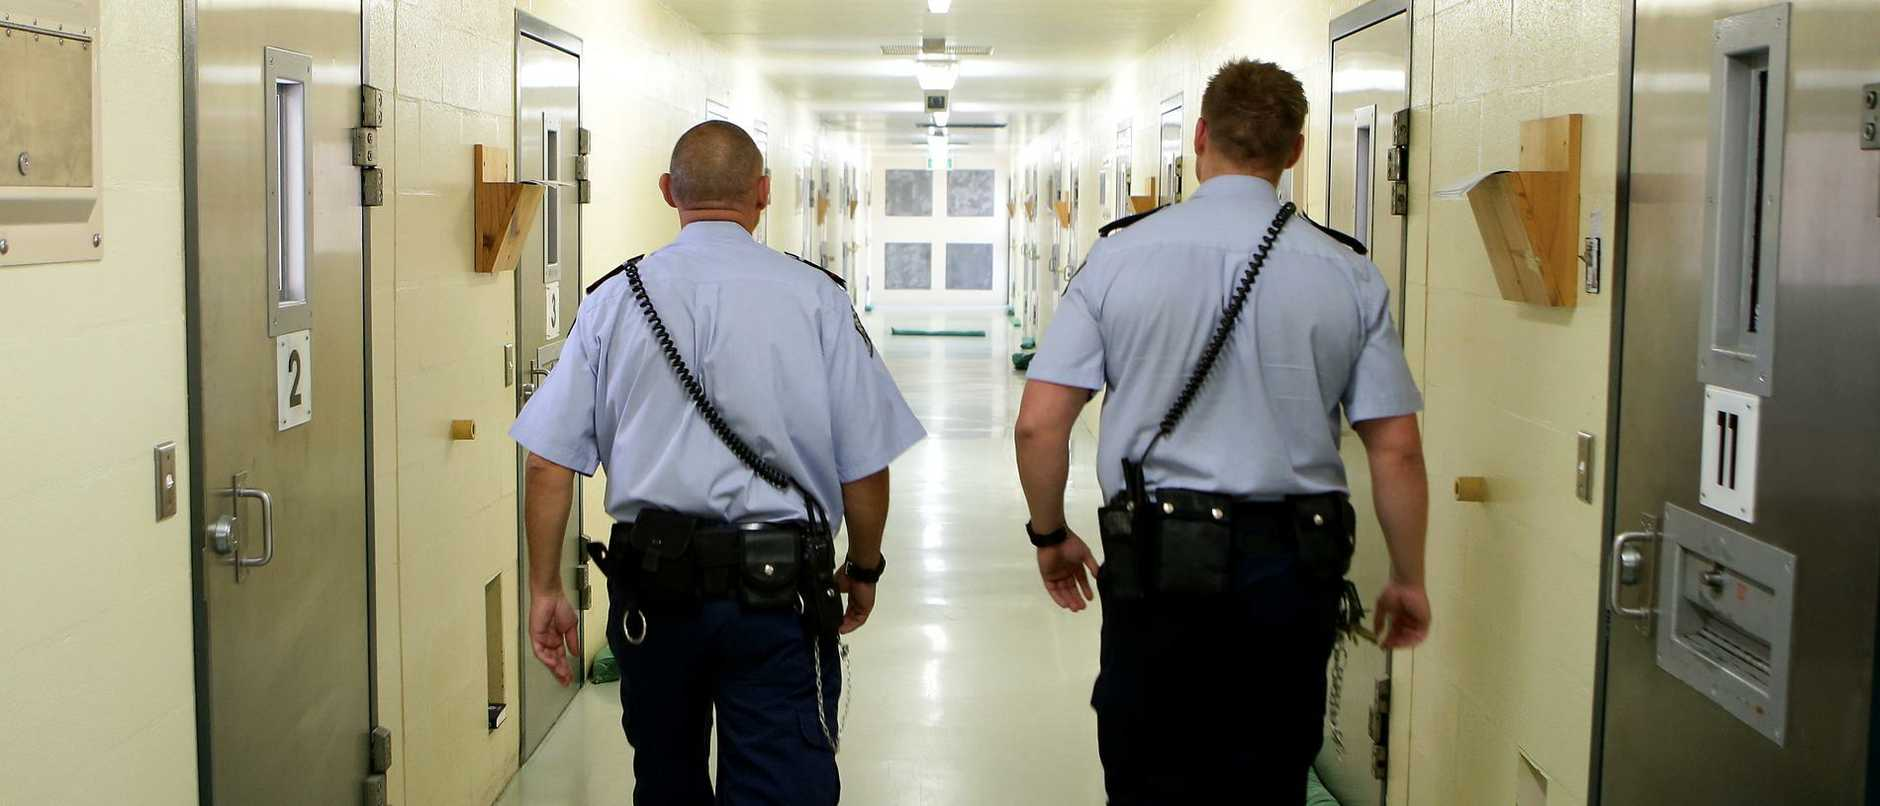 Several Queensland jails are in lockdown as staff walk off the job as part of a wage dispute.